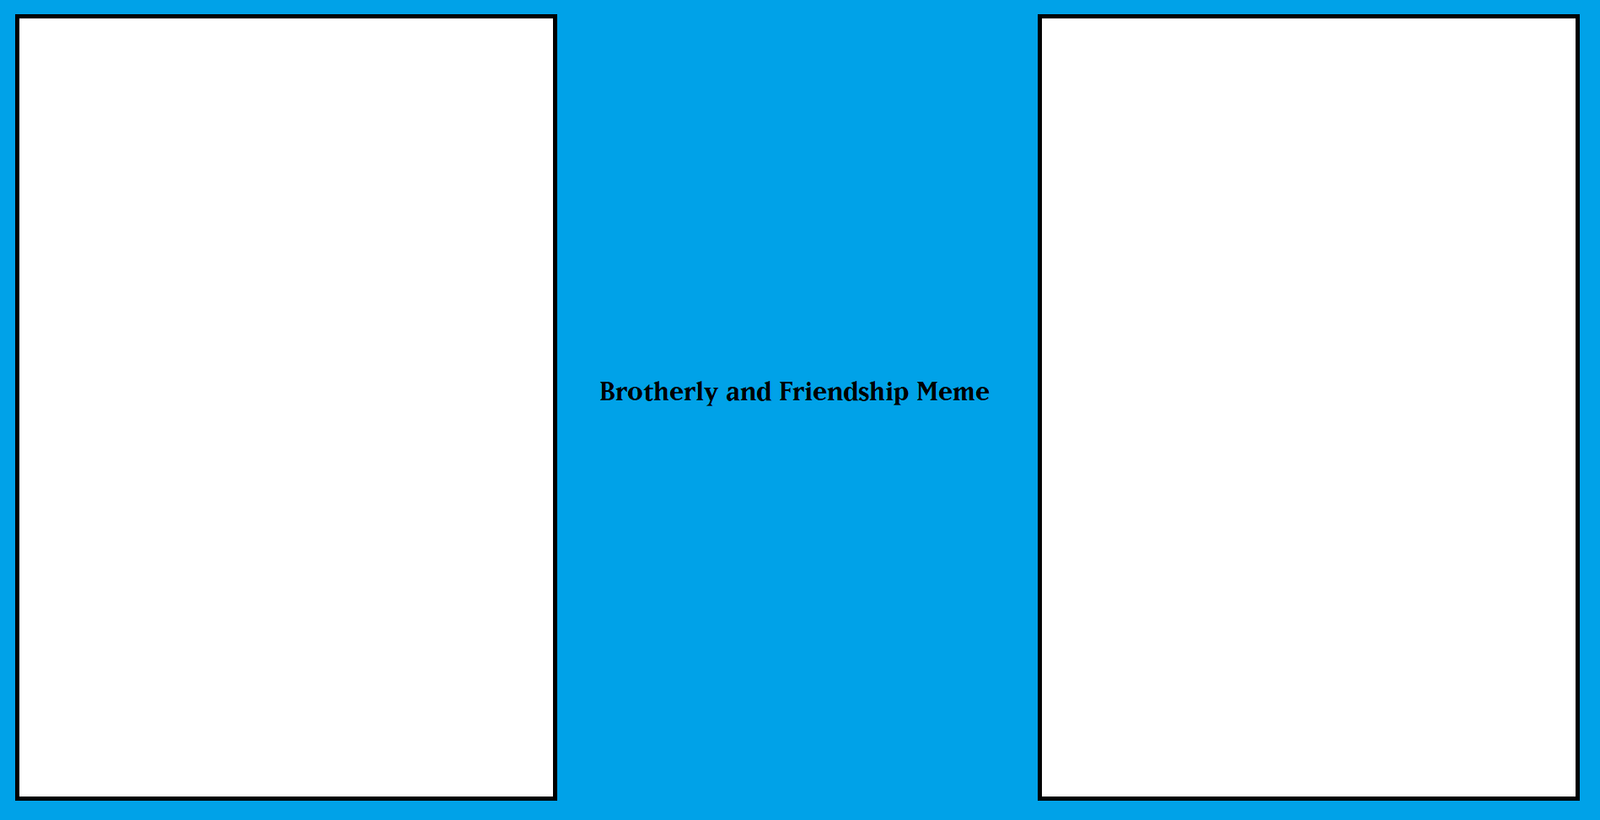 Brotherly and Friendship Meme by MarioFanProductions